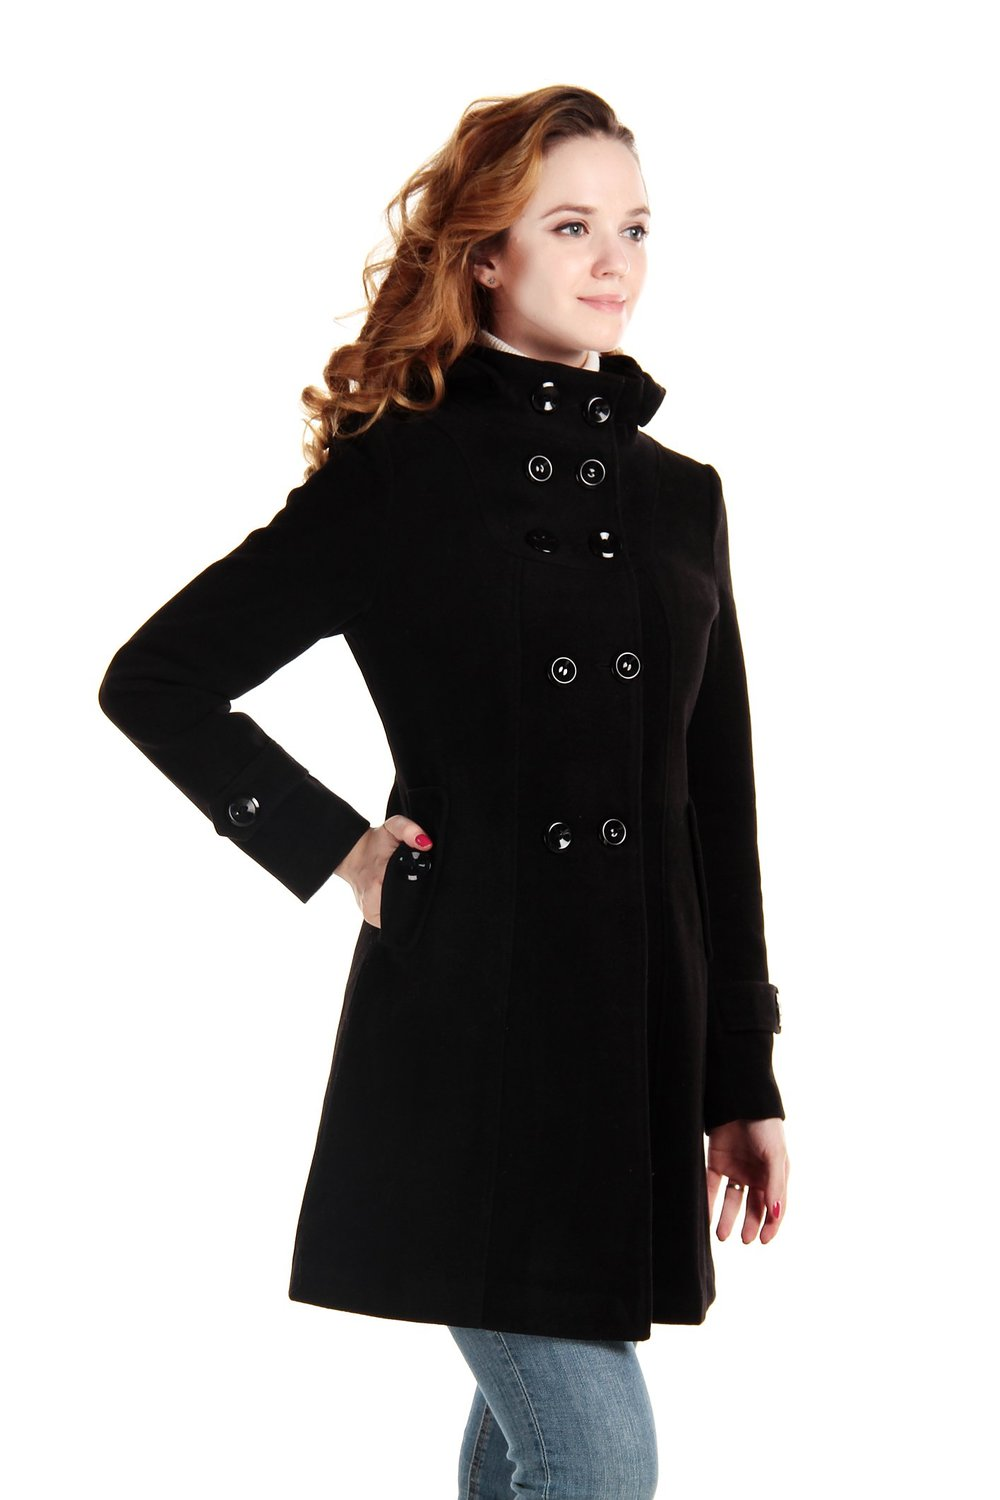 Charex 174 Women Wool Blends Coat Hooded Double Breasted